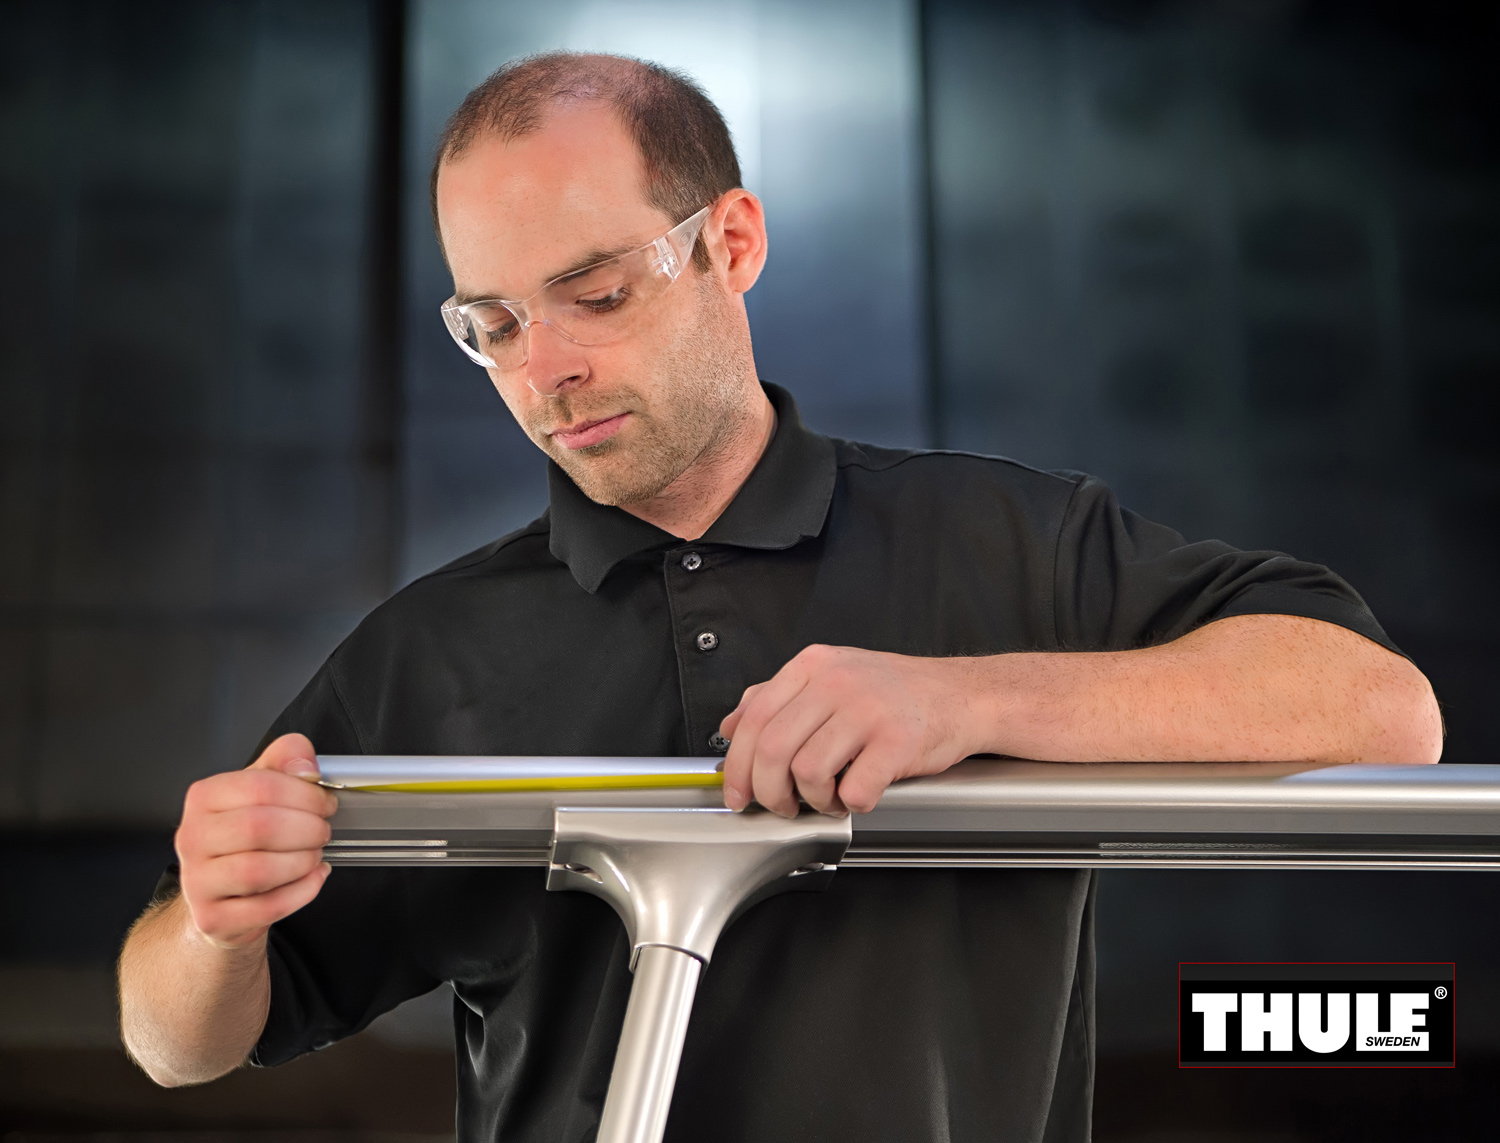 manufacturing photo for the car industry